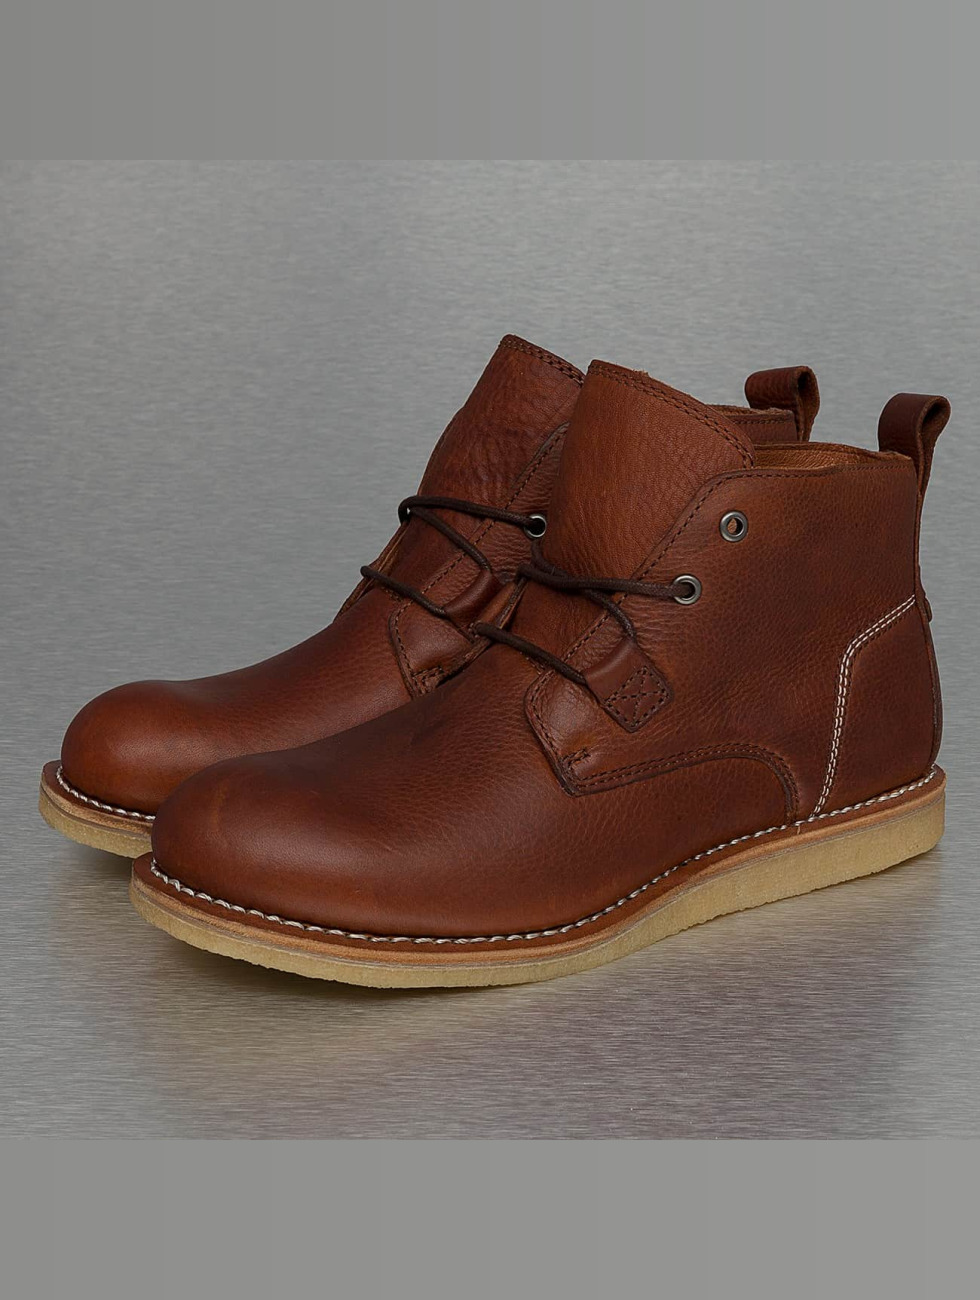 Dickies Scarpa / Stivali In Rovere Moro Ruscello 267 374 TYb2Dswowm